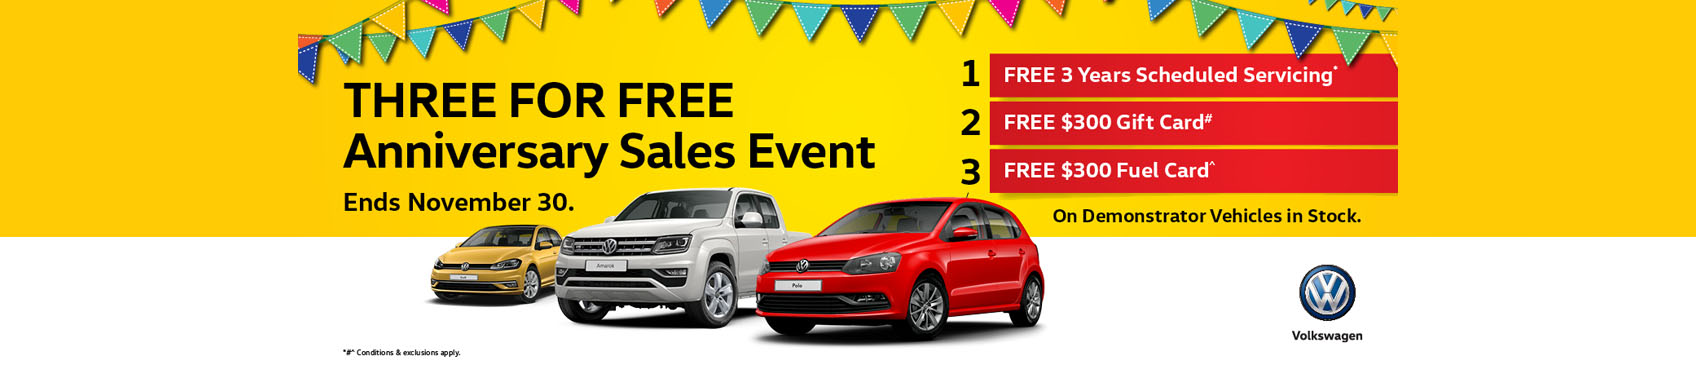 THREE FOR FREE Anniversary Sales Event